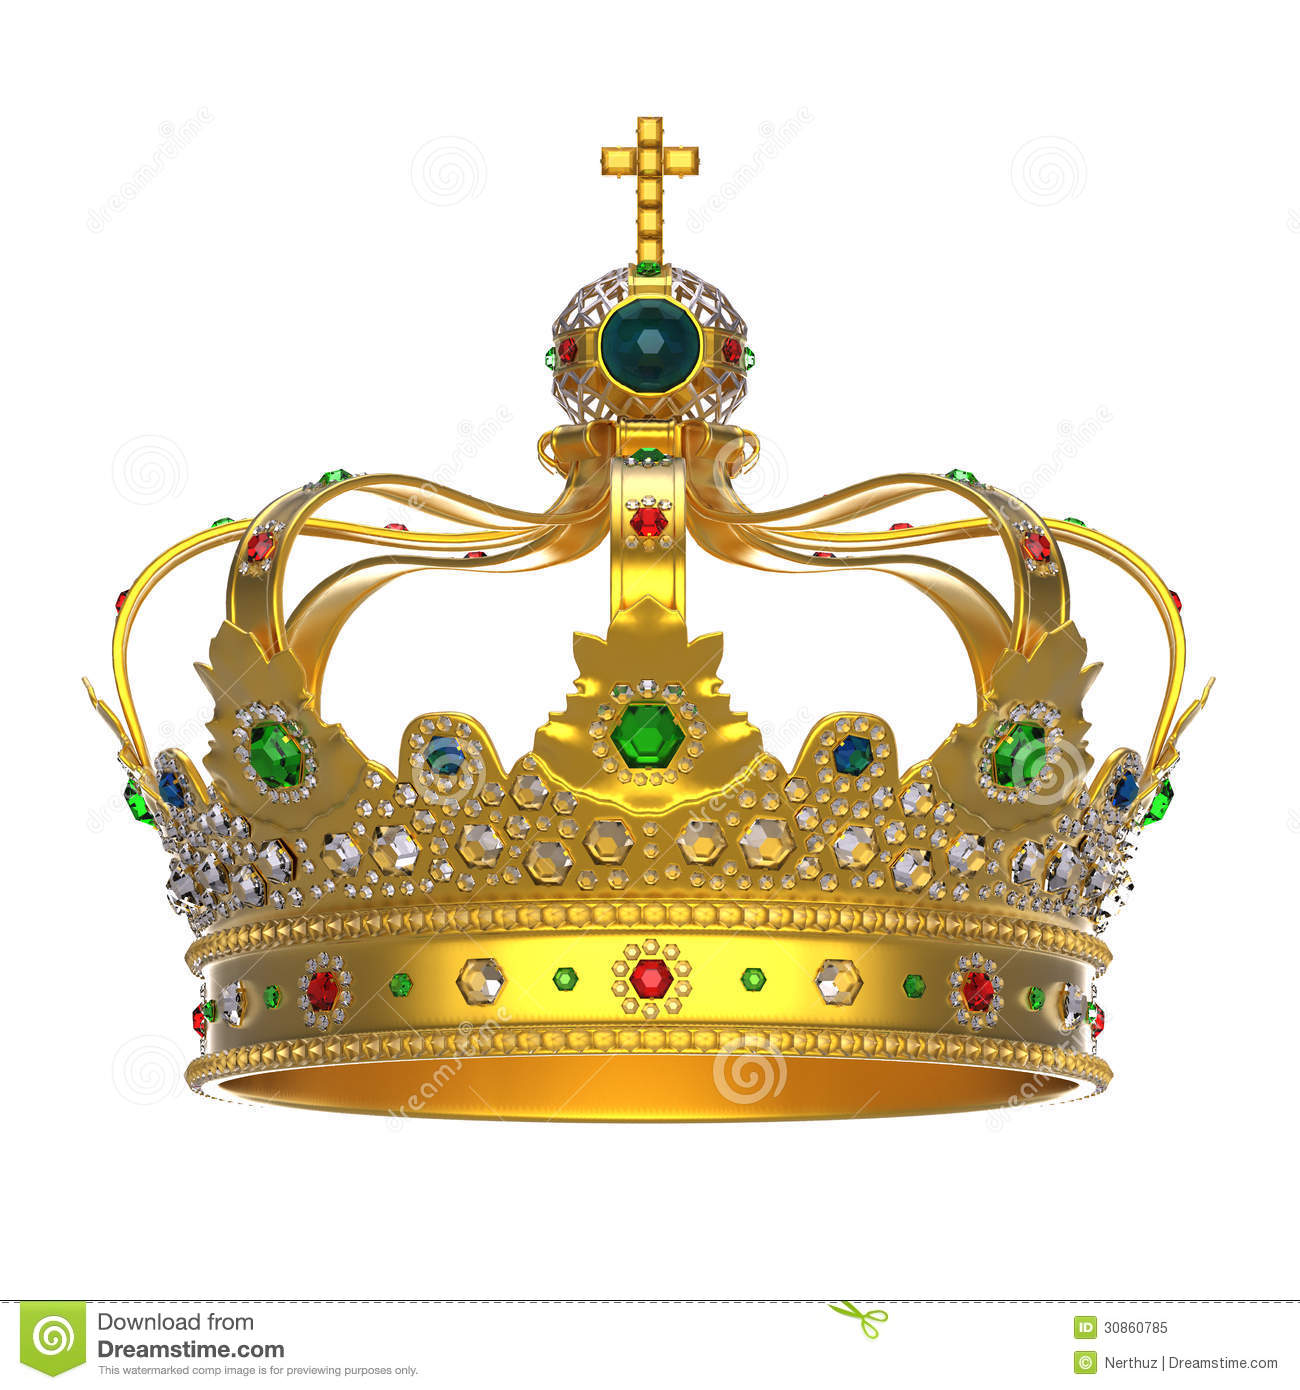 Gold Royal Crown With Jewels Royalty Free Stock Photo - Image ...